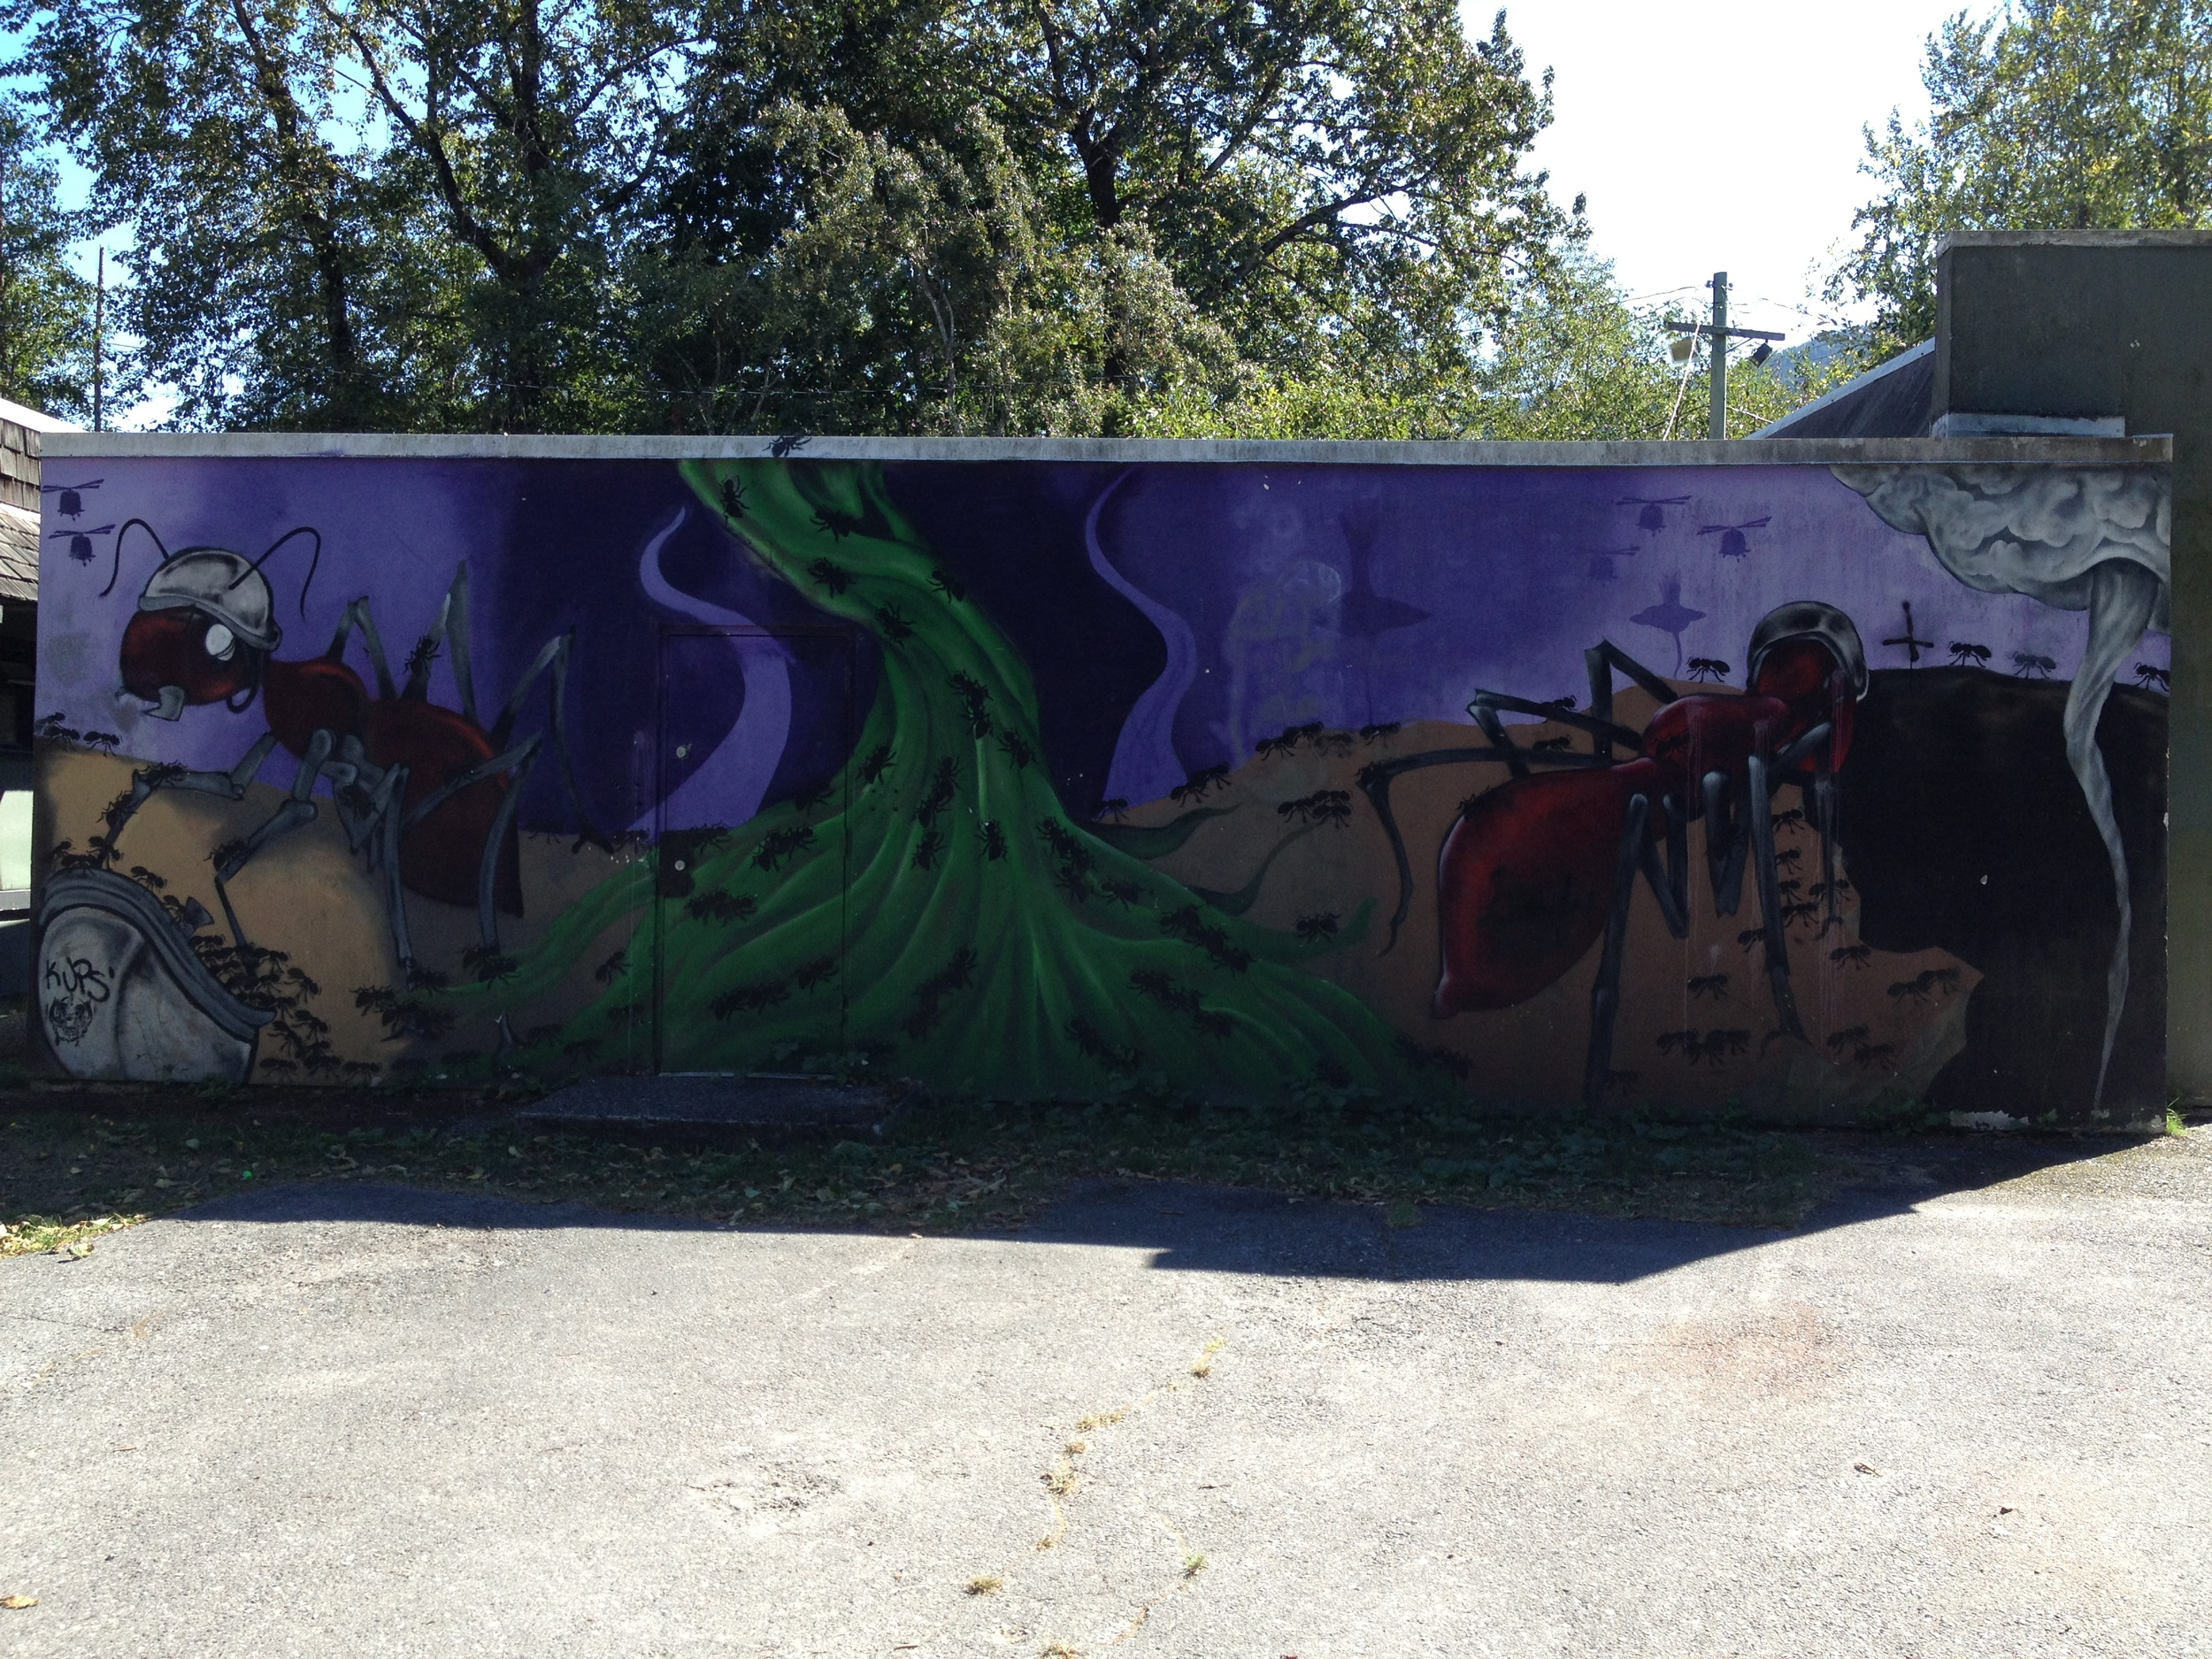 the Ants are marching. Squamish Youth Recreation Center. September 10, 2014